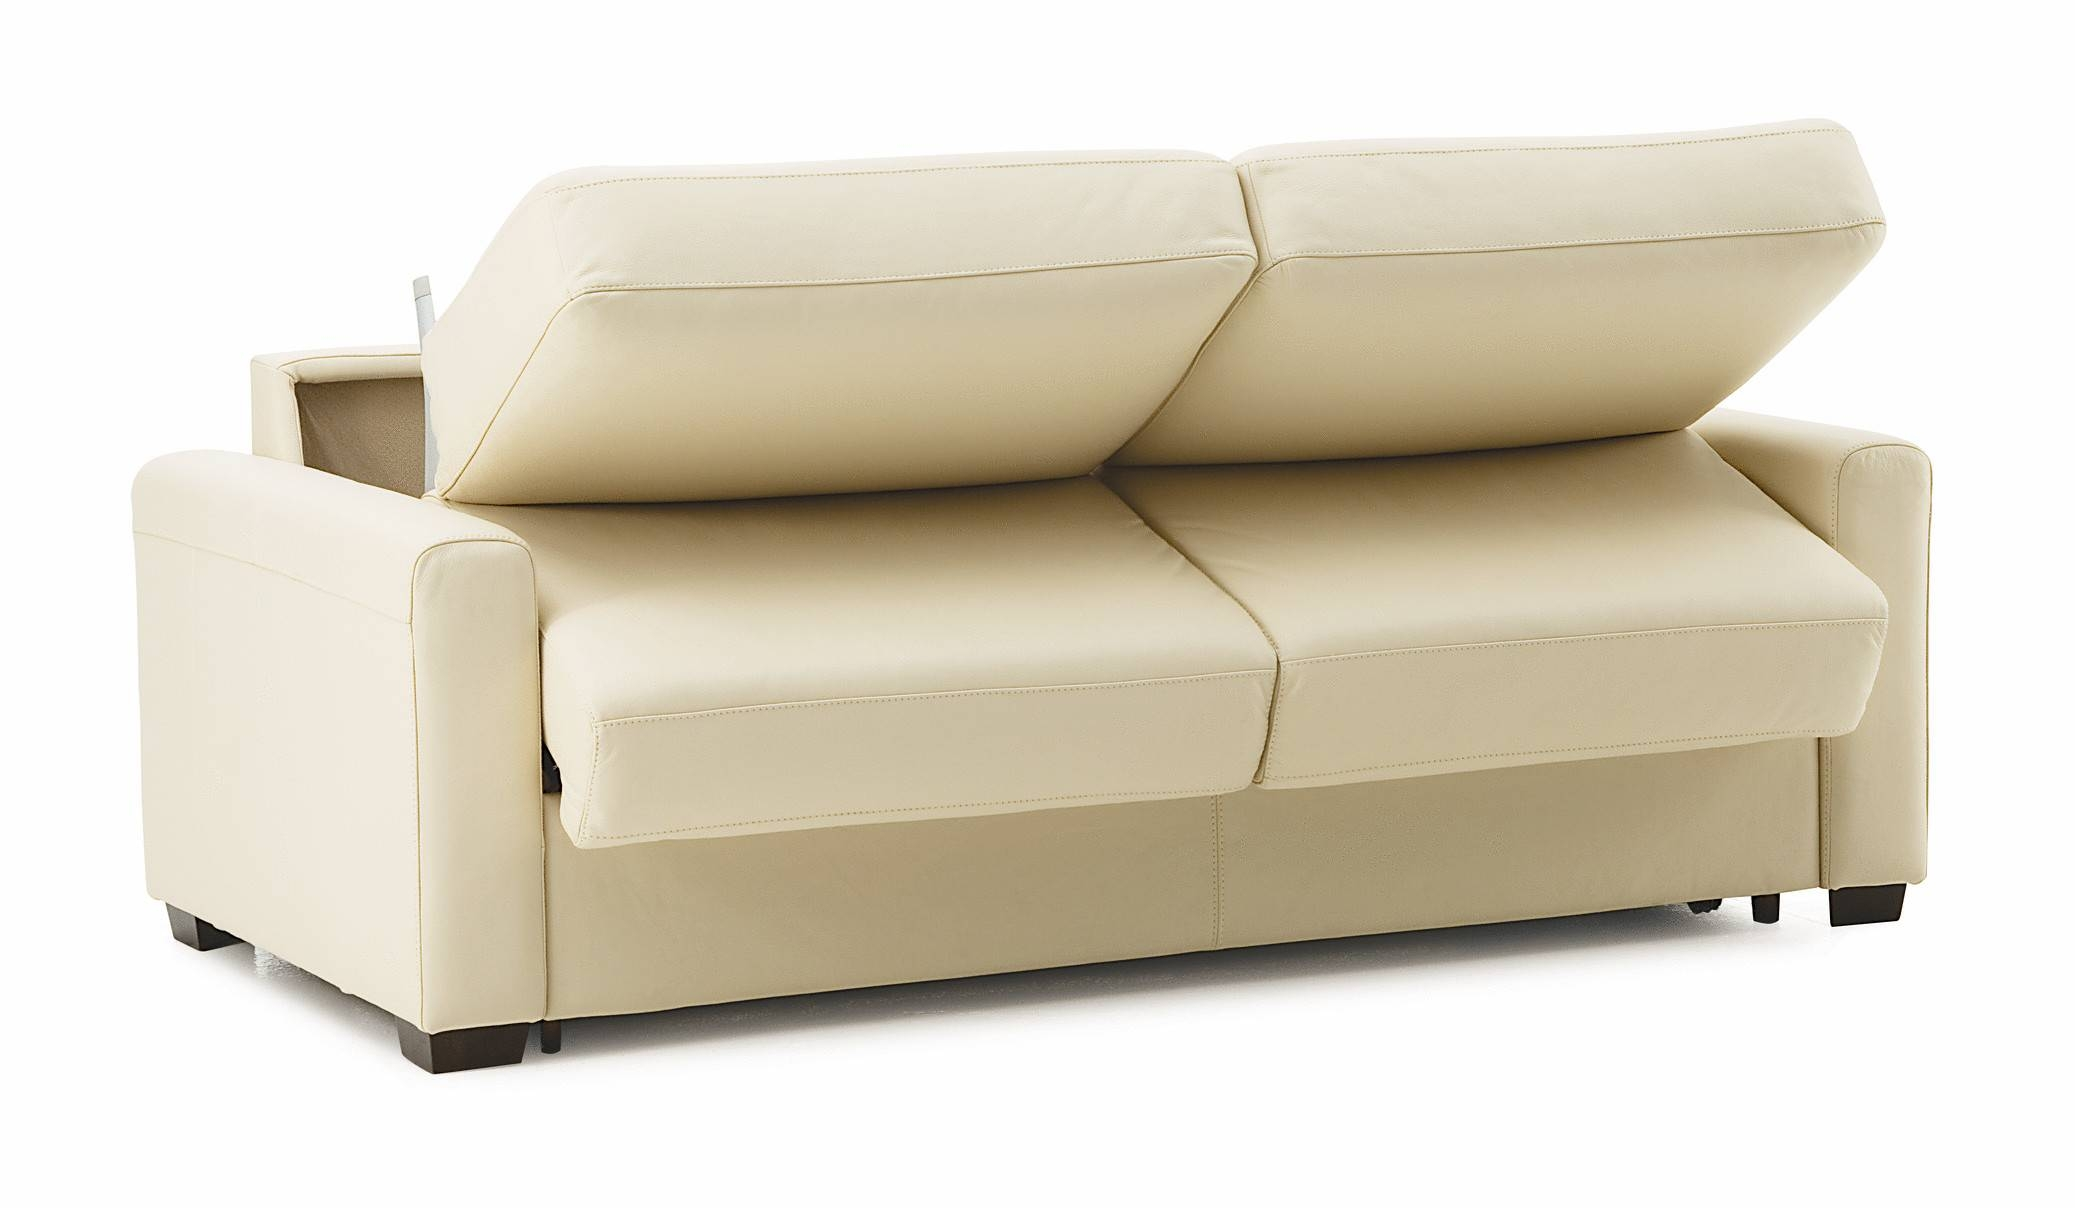 Comfortable Sofa Sleeper And The Comfort Sleeper Sofaamerican within Comfort Sleeper Sofas (Image 11 of 30)